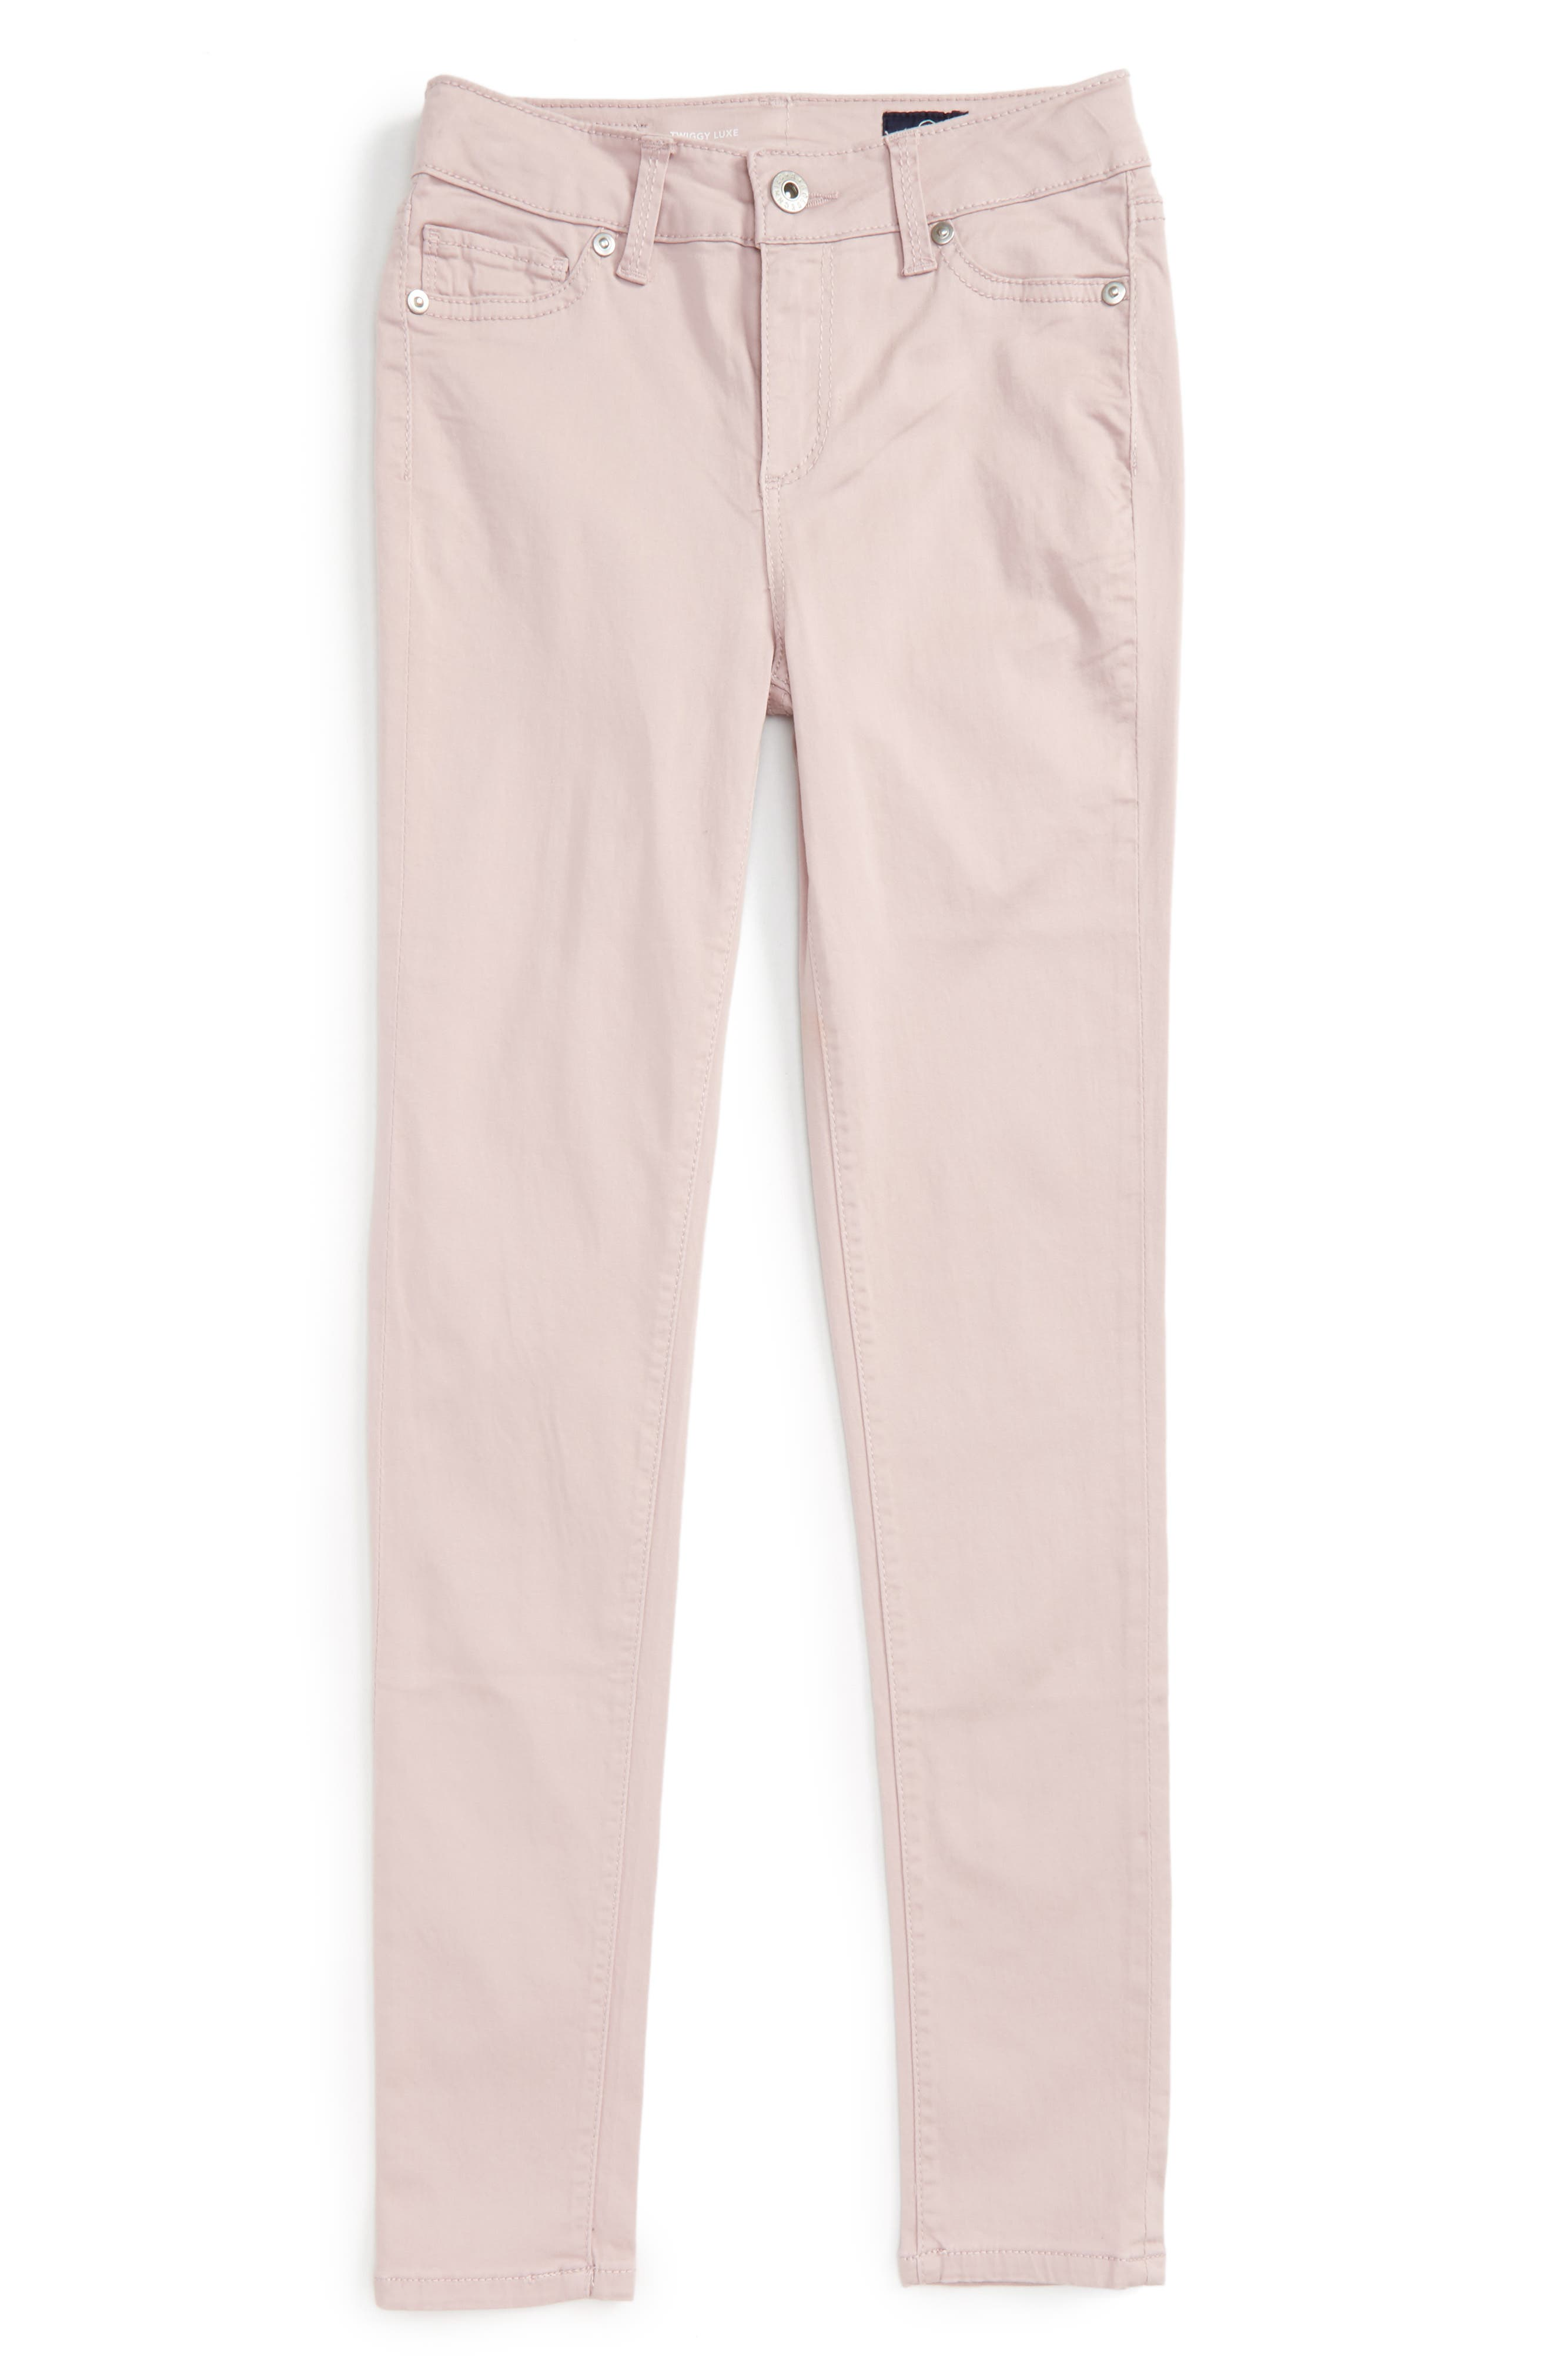 Twiggy Ankle Skinny Jeans,                         Main,                         color, Light Pink